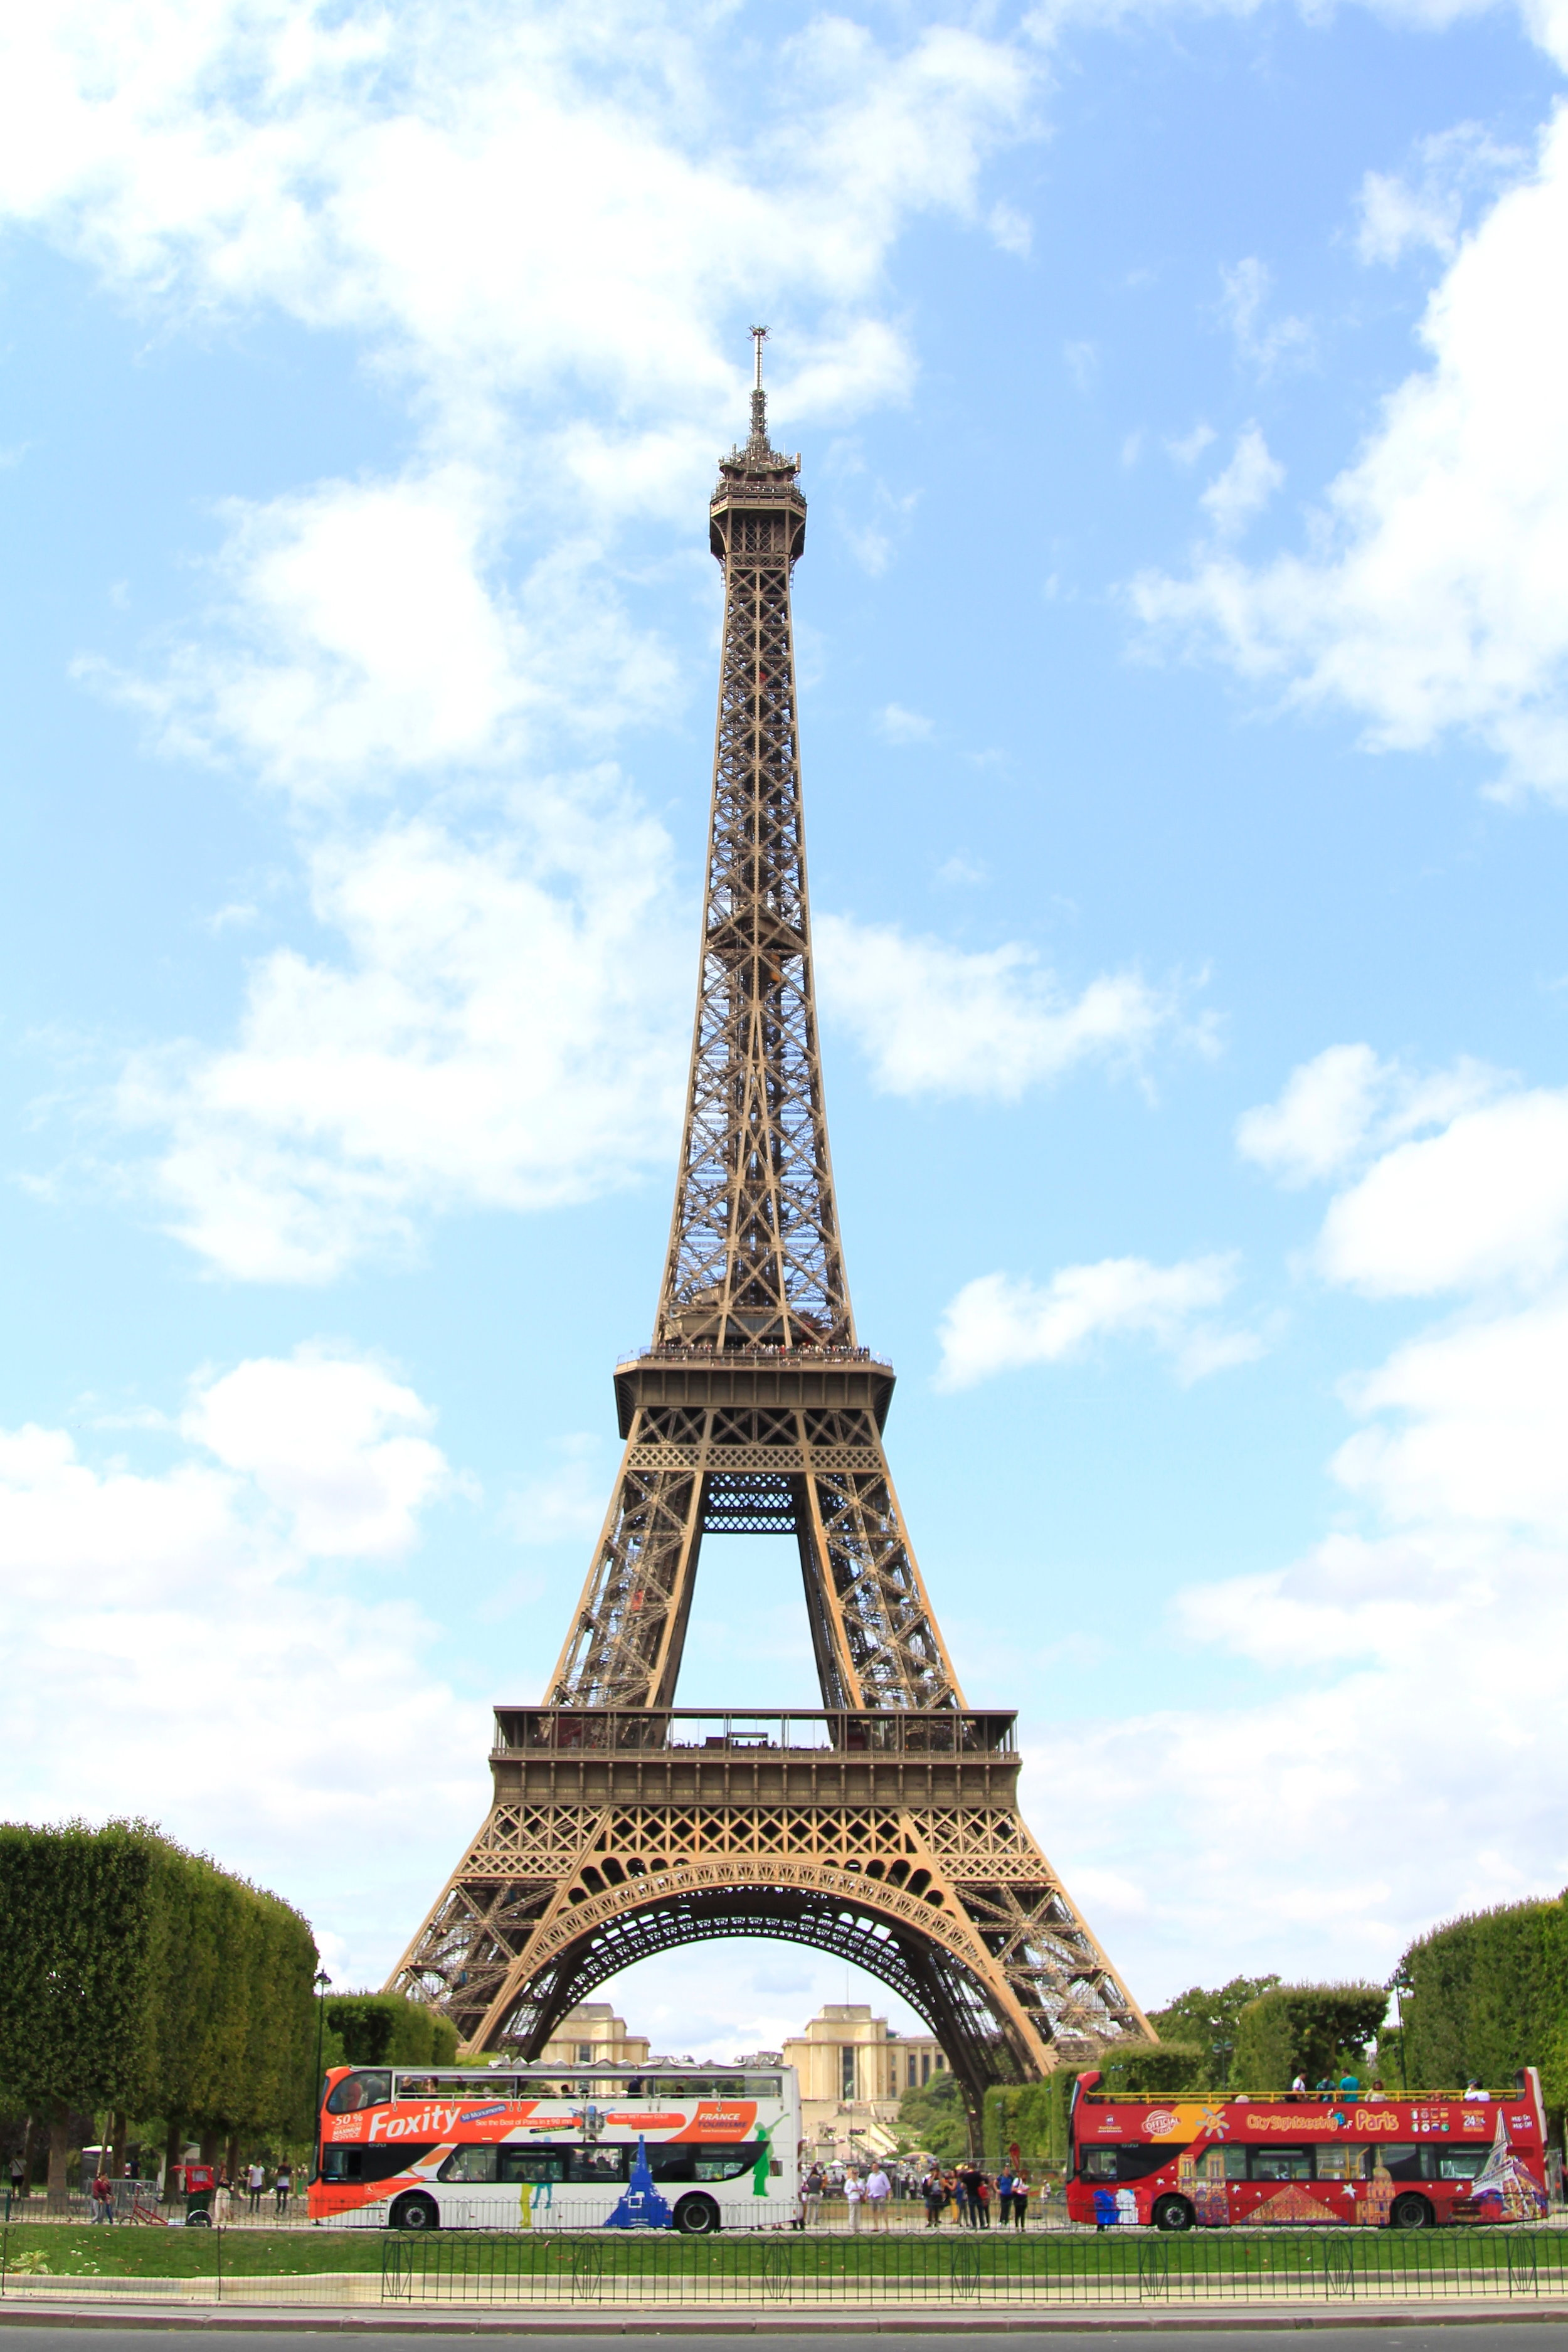 The Eiffel Tower - Bucket List!